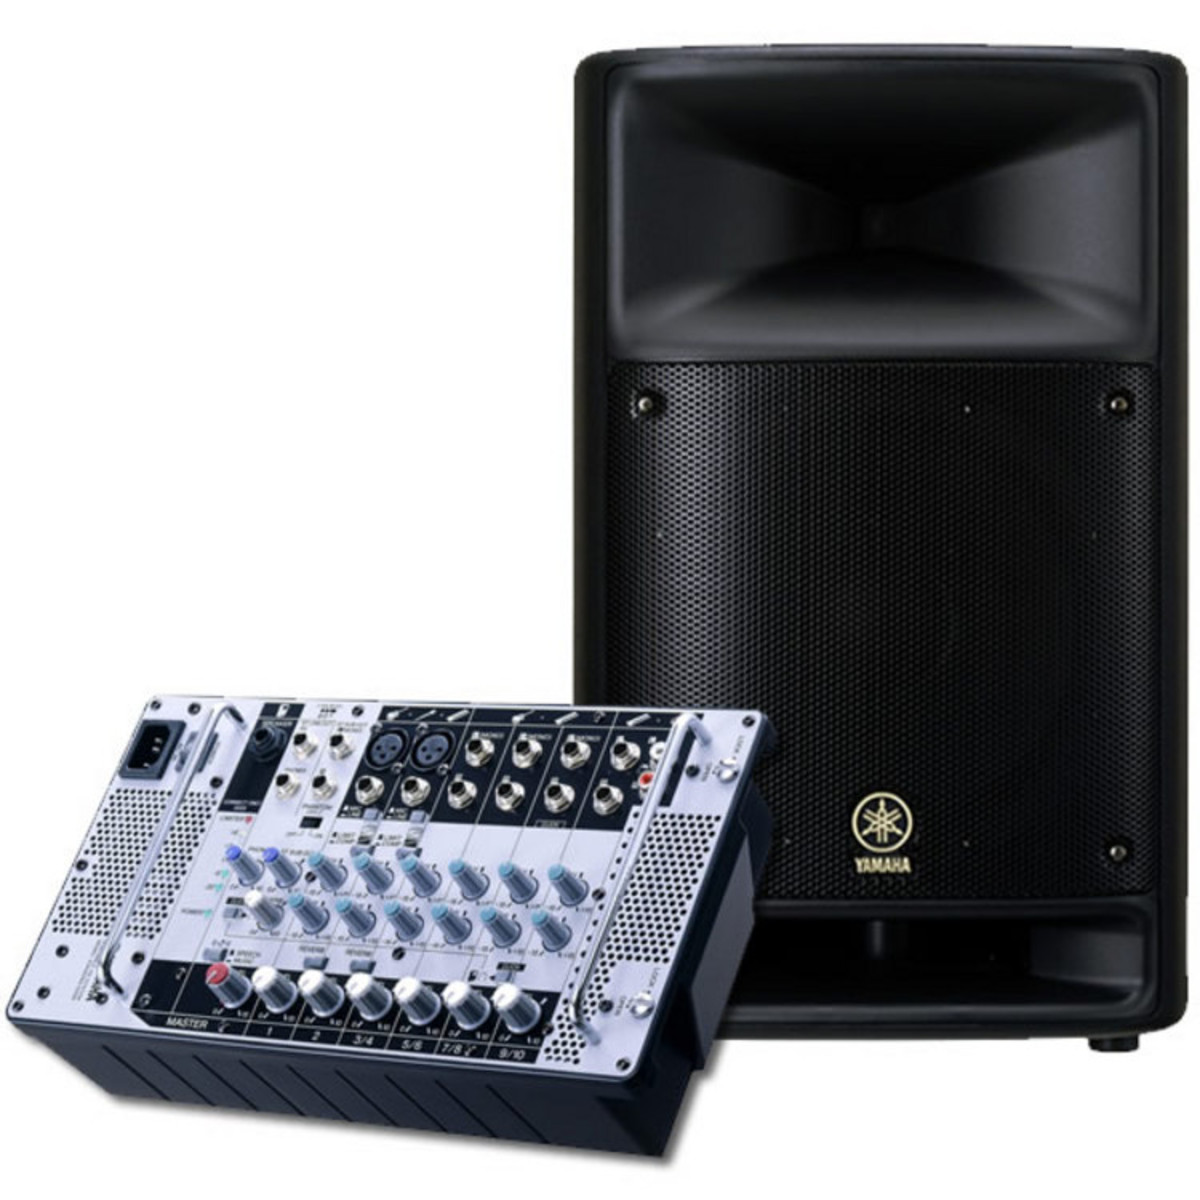 Yamaha stagepas 250m portable pa system nearly new at for Yamaha pa system